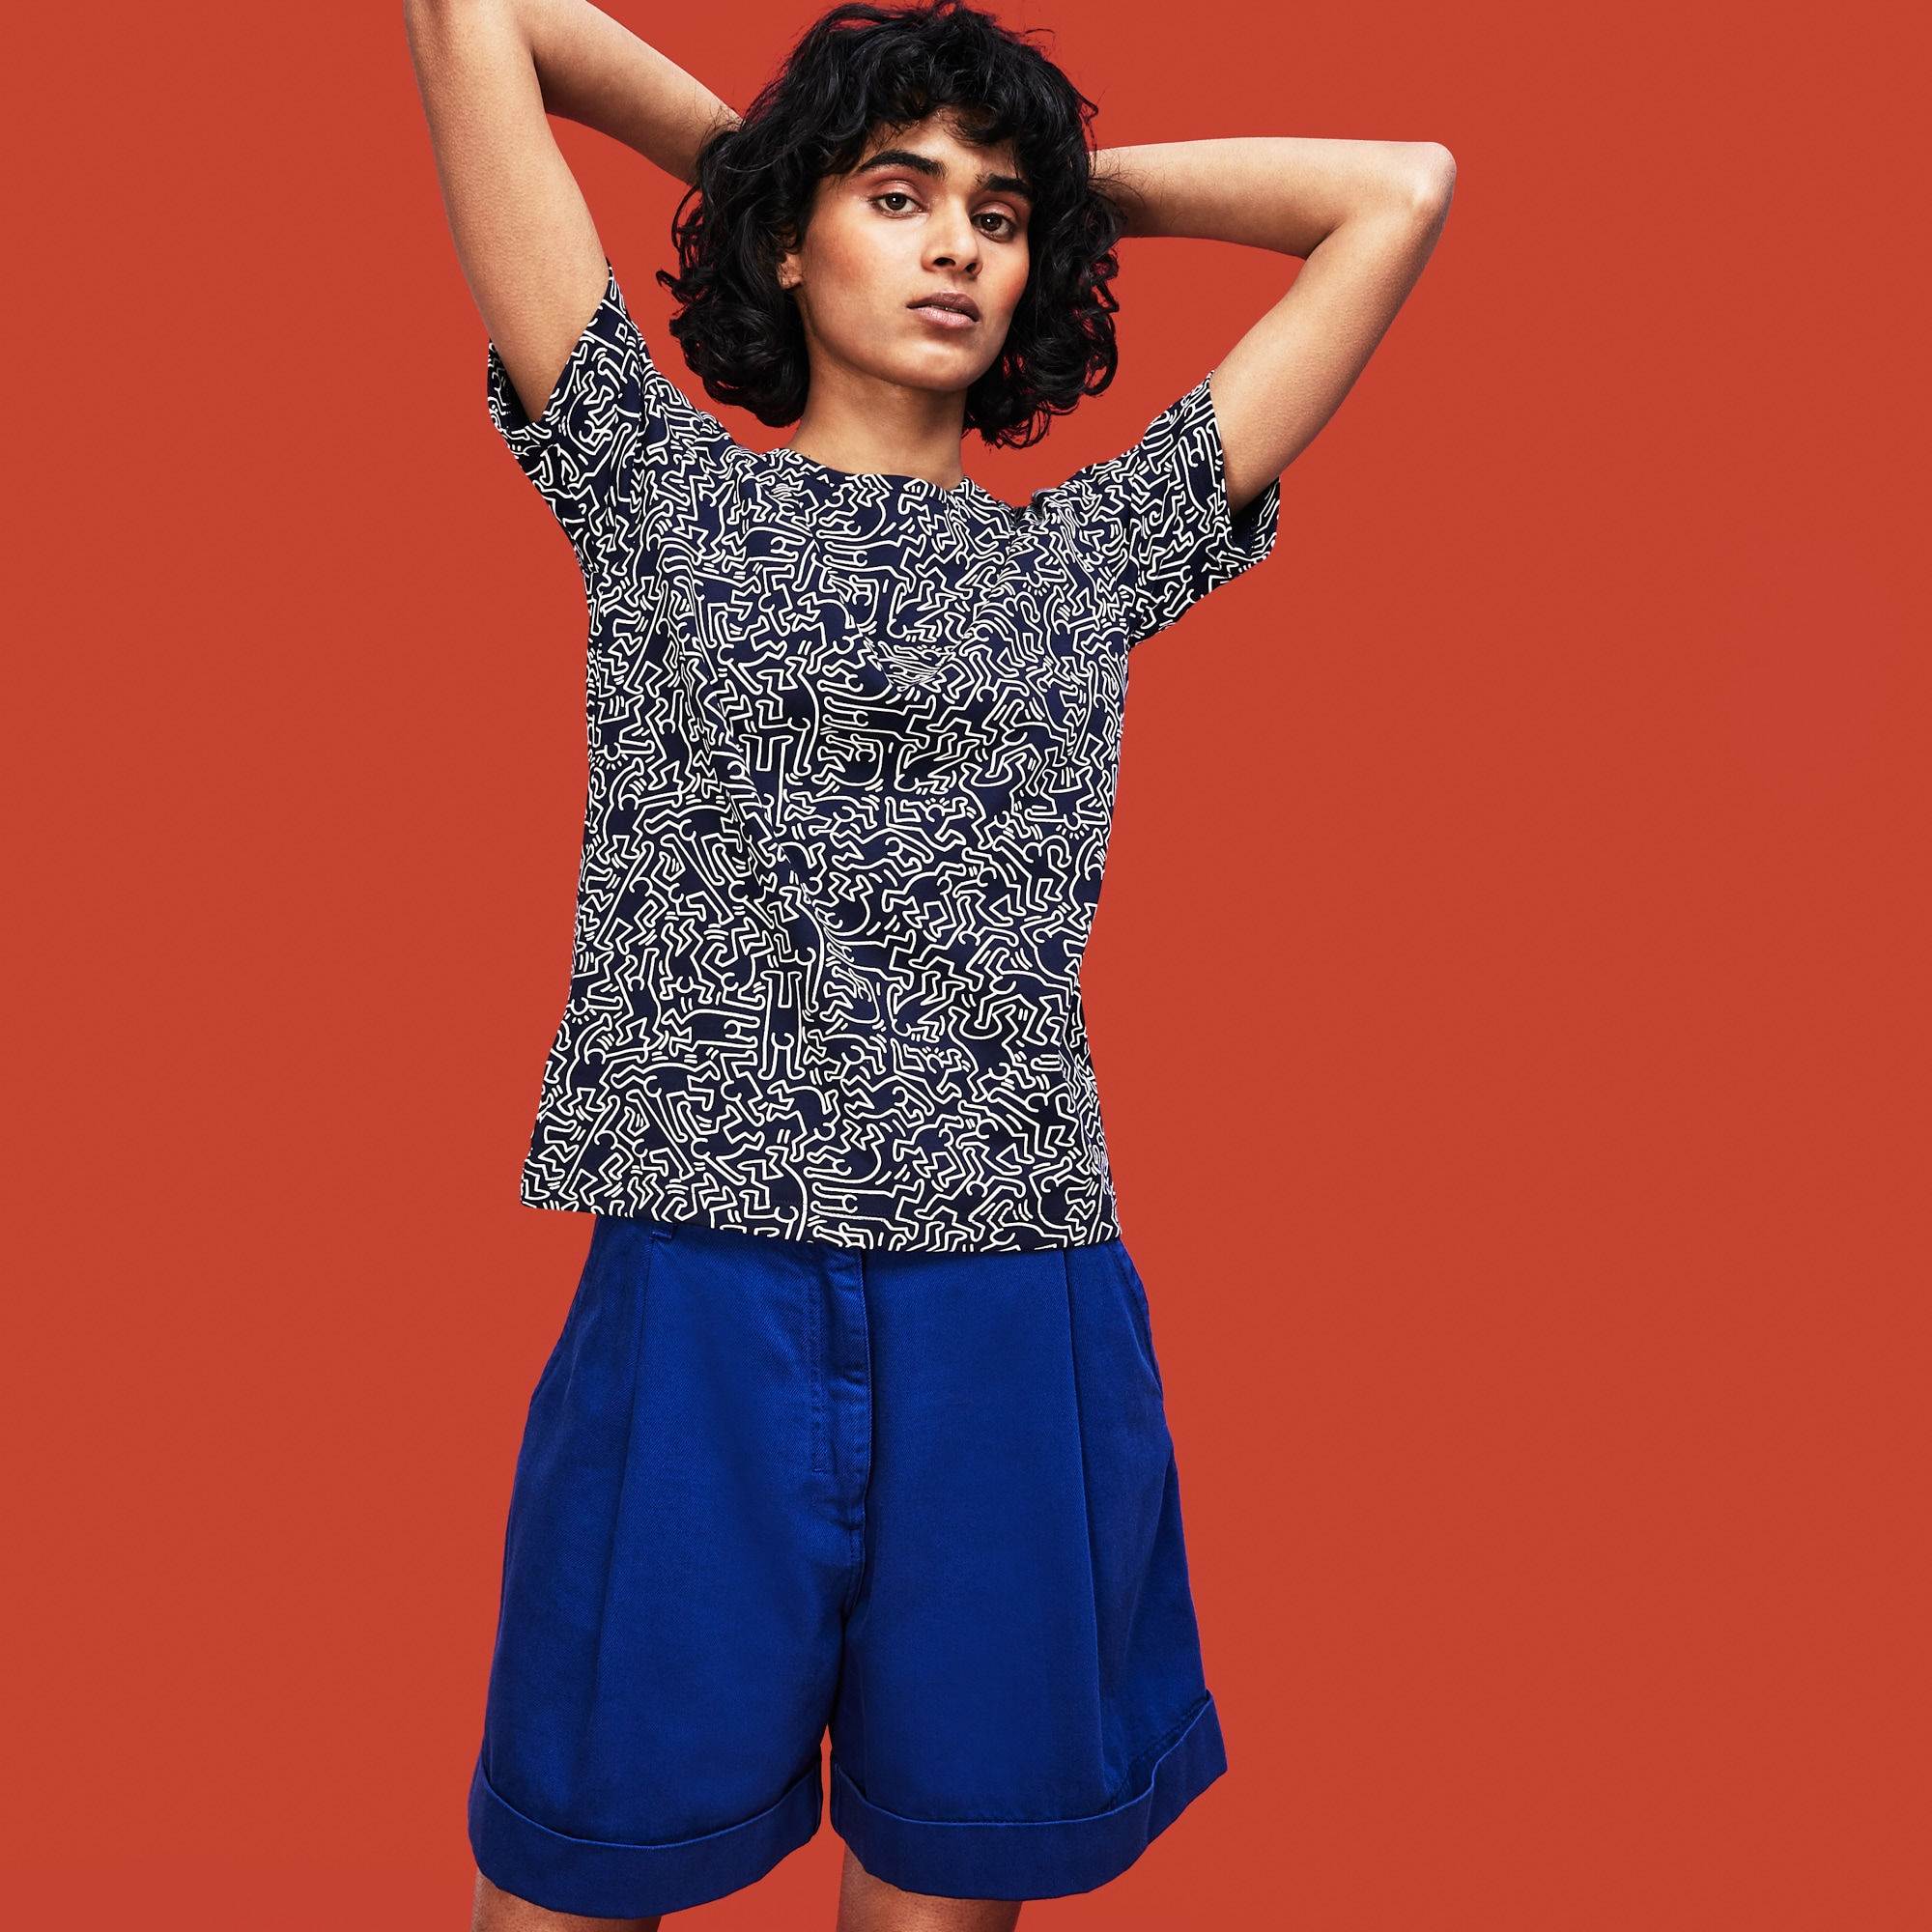 8f37fb29c4d Women's Keith Haring Print Crew Neck Jersey T-shirt | LACOSTE